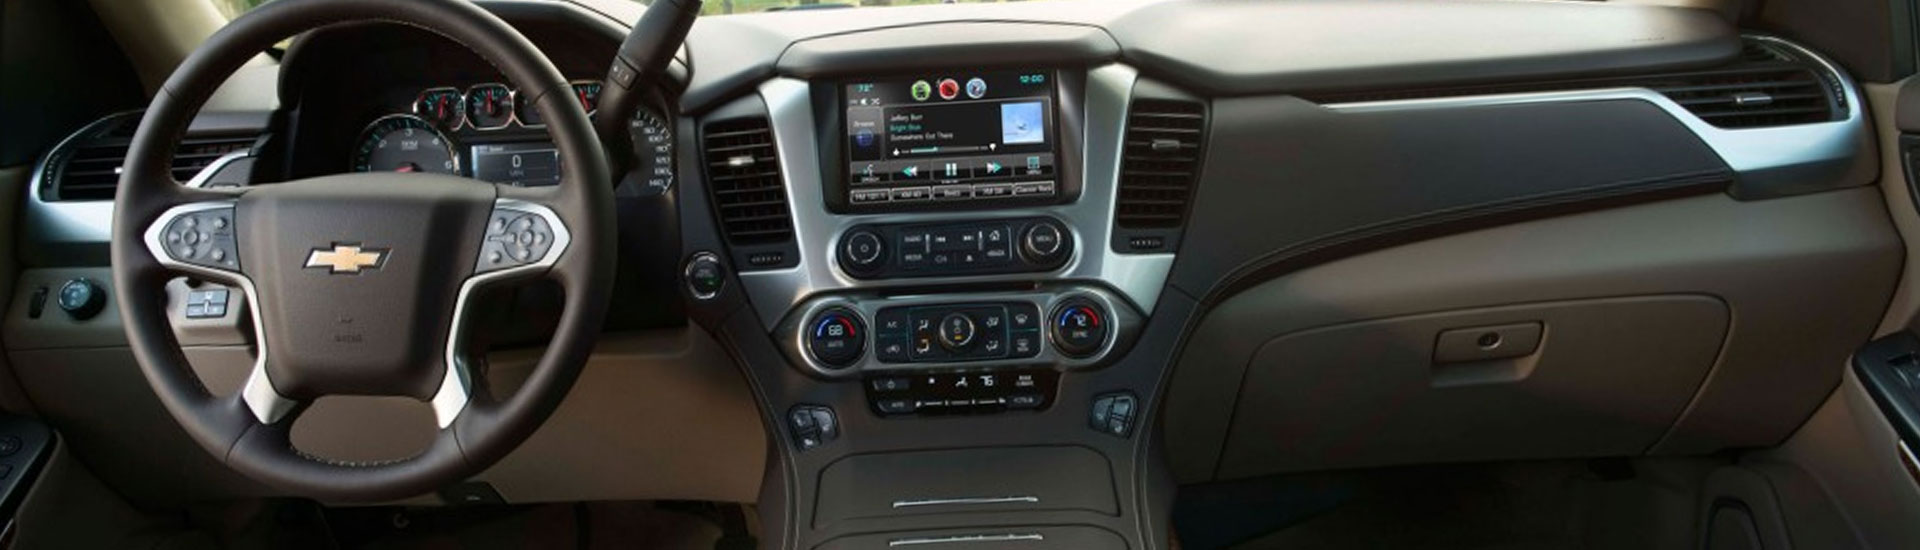 Chevrolet Suburban Dash Kits